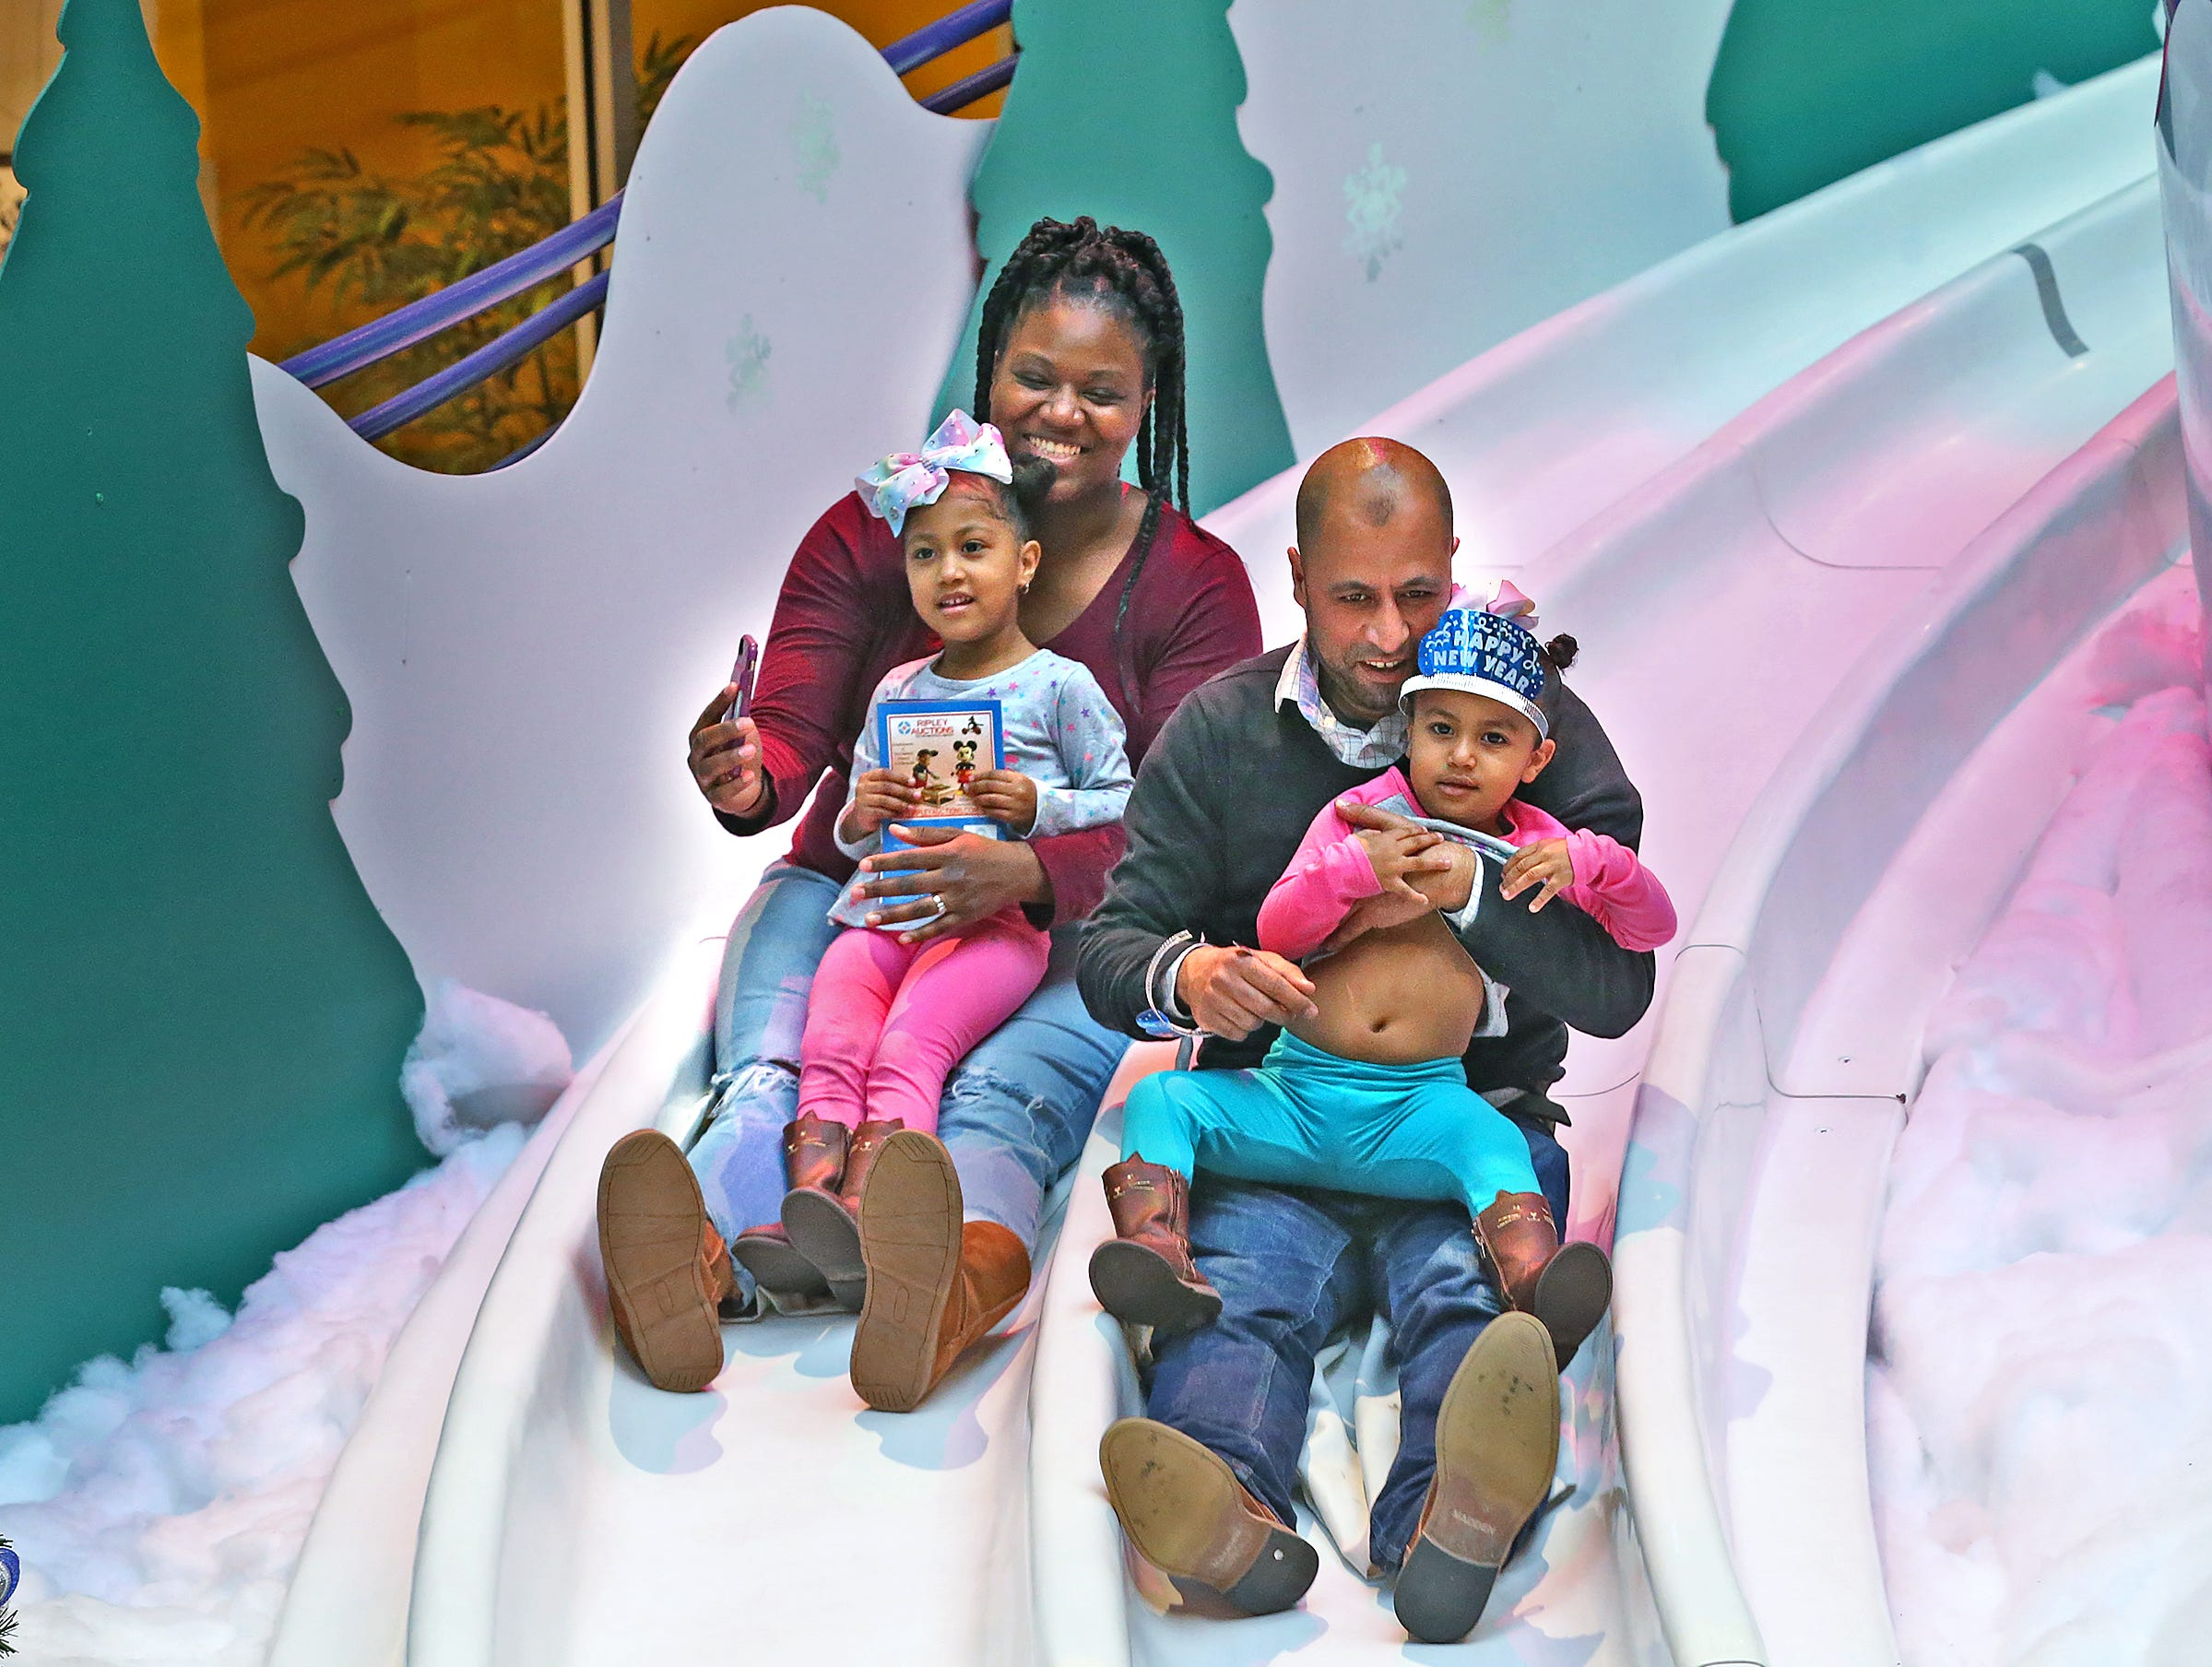 Lucy Payne, hold Aysha Labbaoui, and Abdul Labbaoui holding Amina Payne slide down the slide at the Countdown to noon celebration at the Children's Museum of Indianapolis, Monday, Dec. 31, 2018.